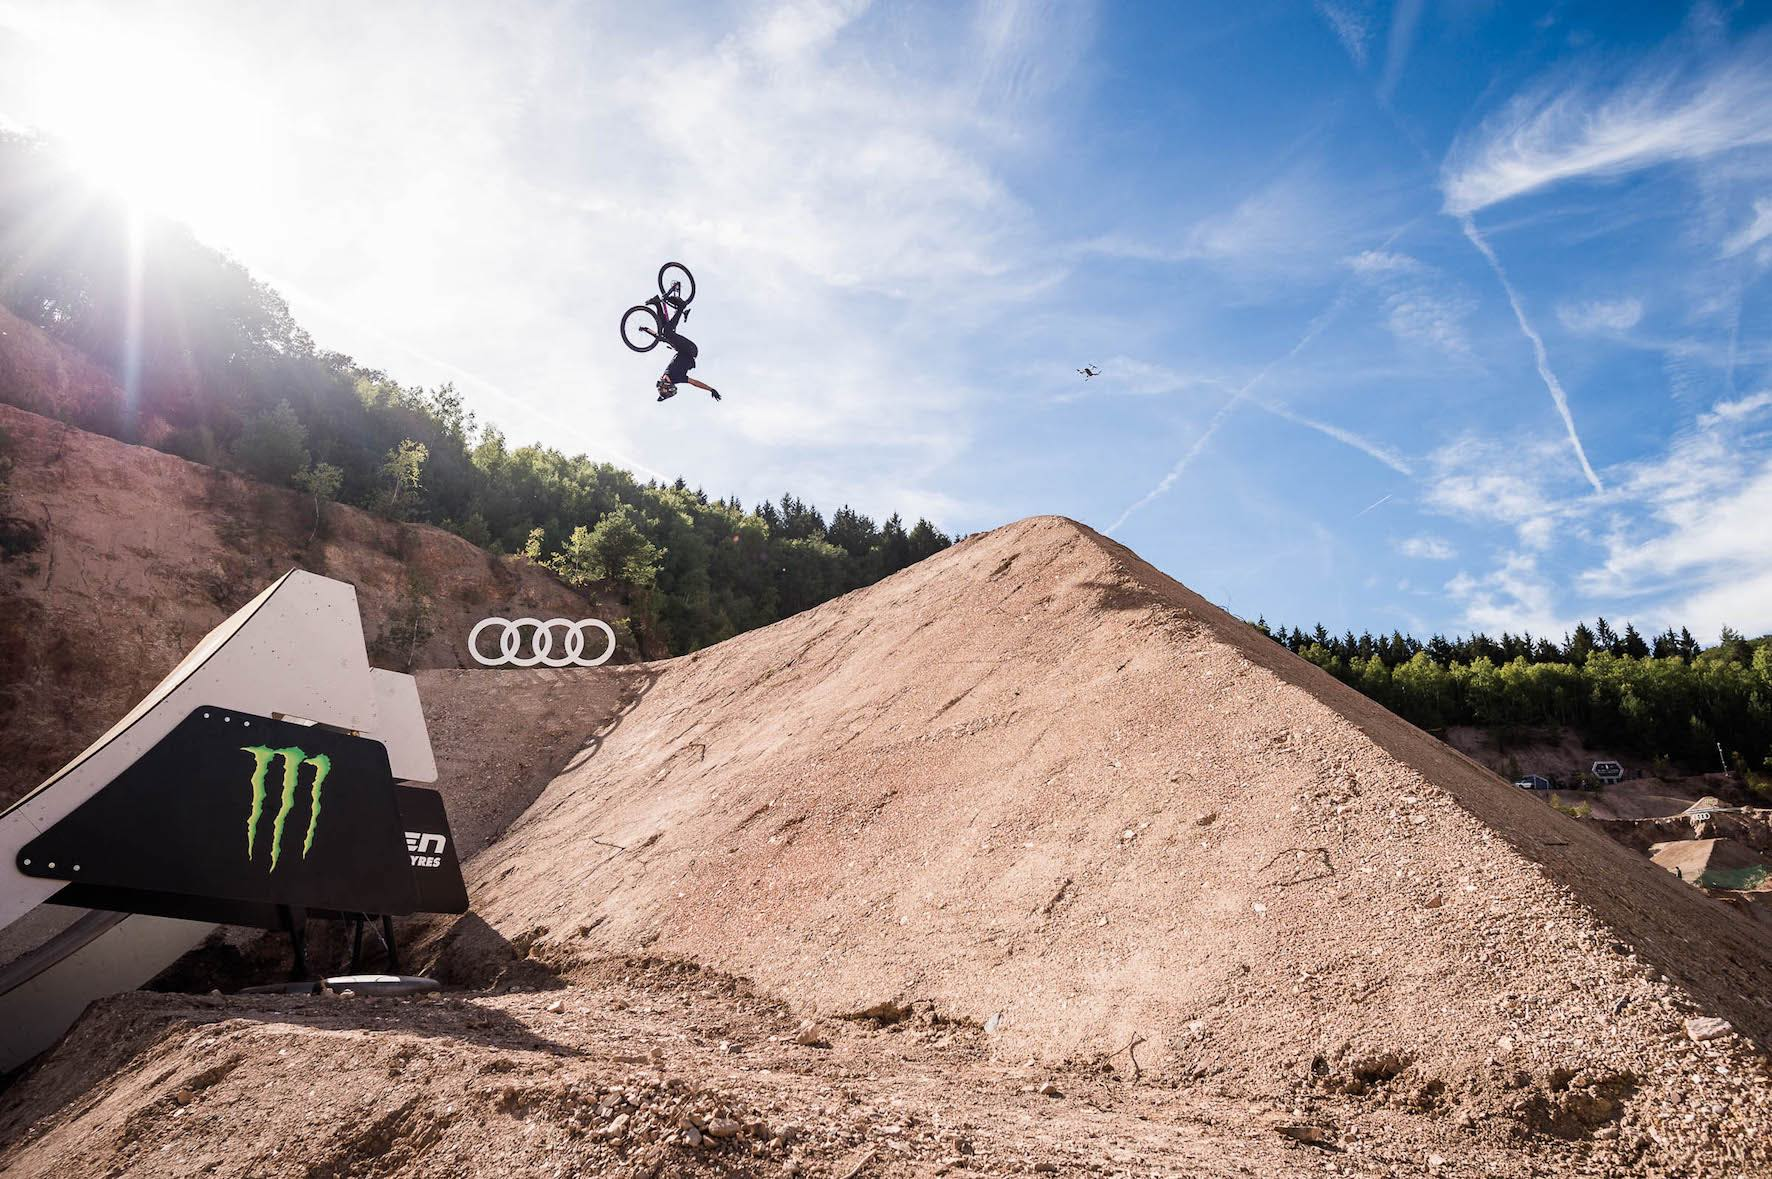 We interview Max Fredriksson about riding at the Audi Nines MTB event